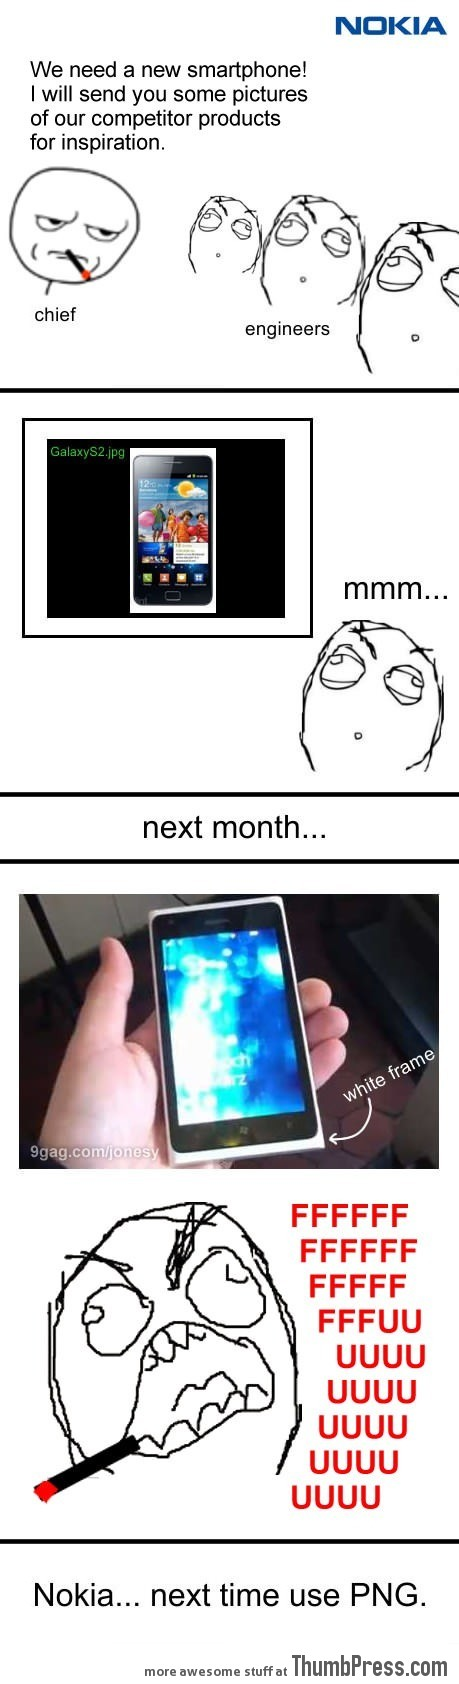 Origin of Nokia Lumia